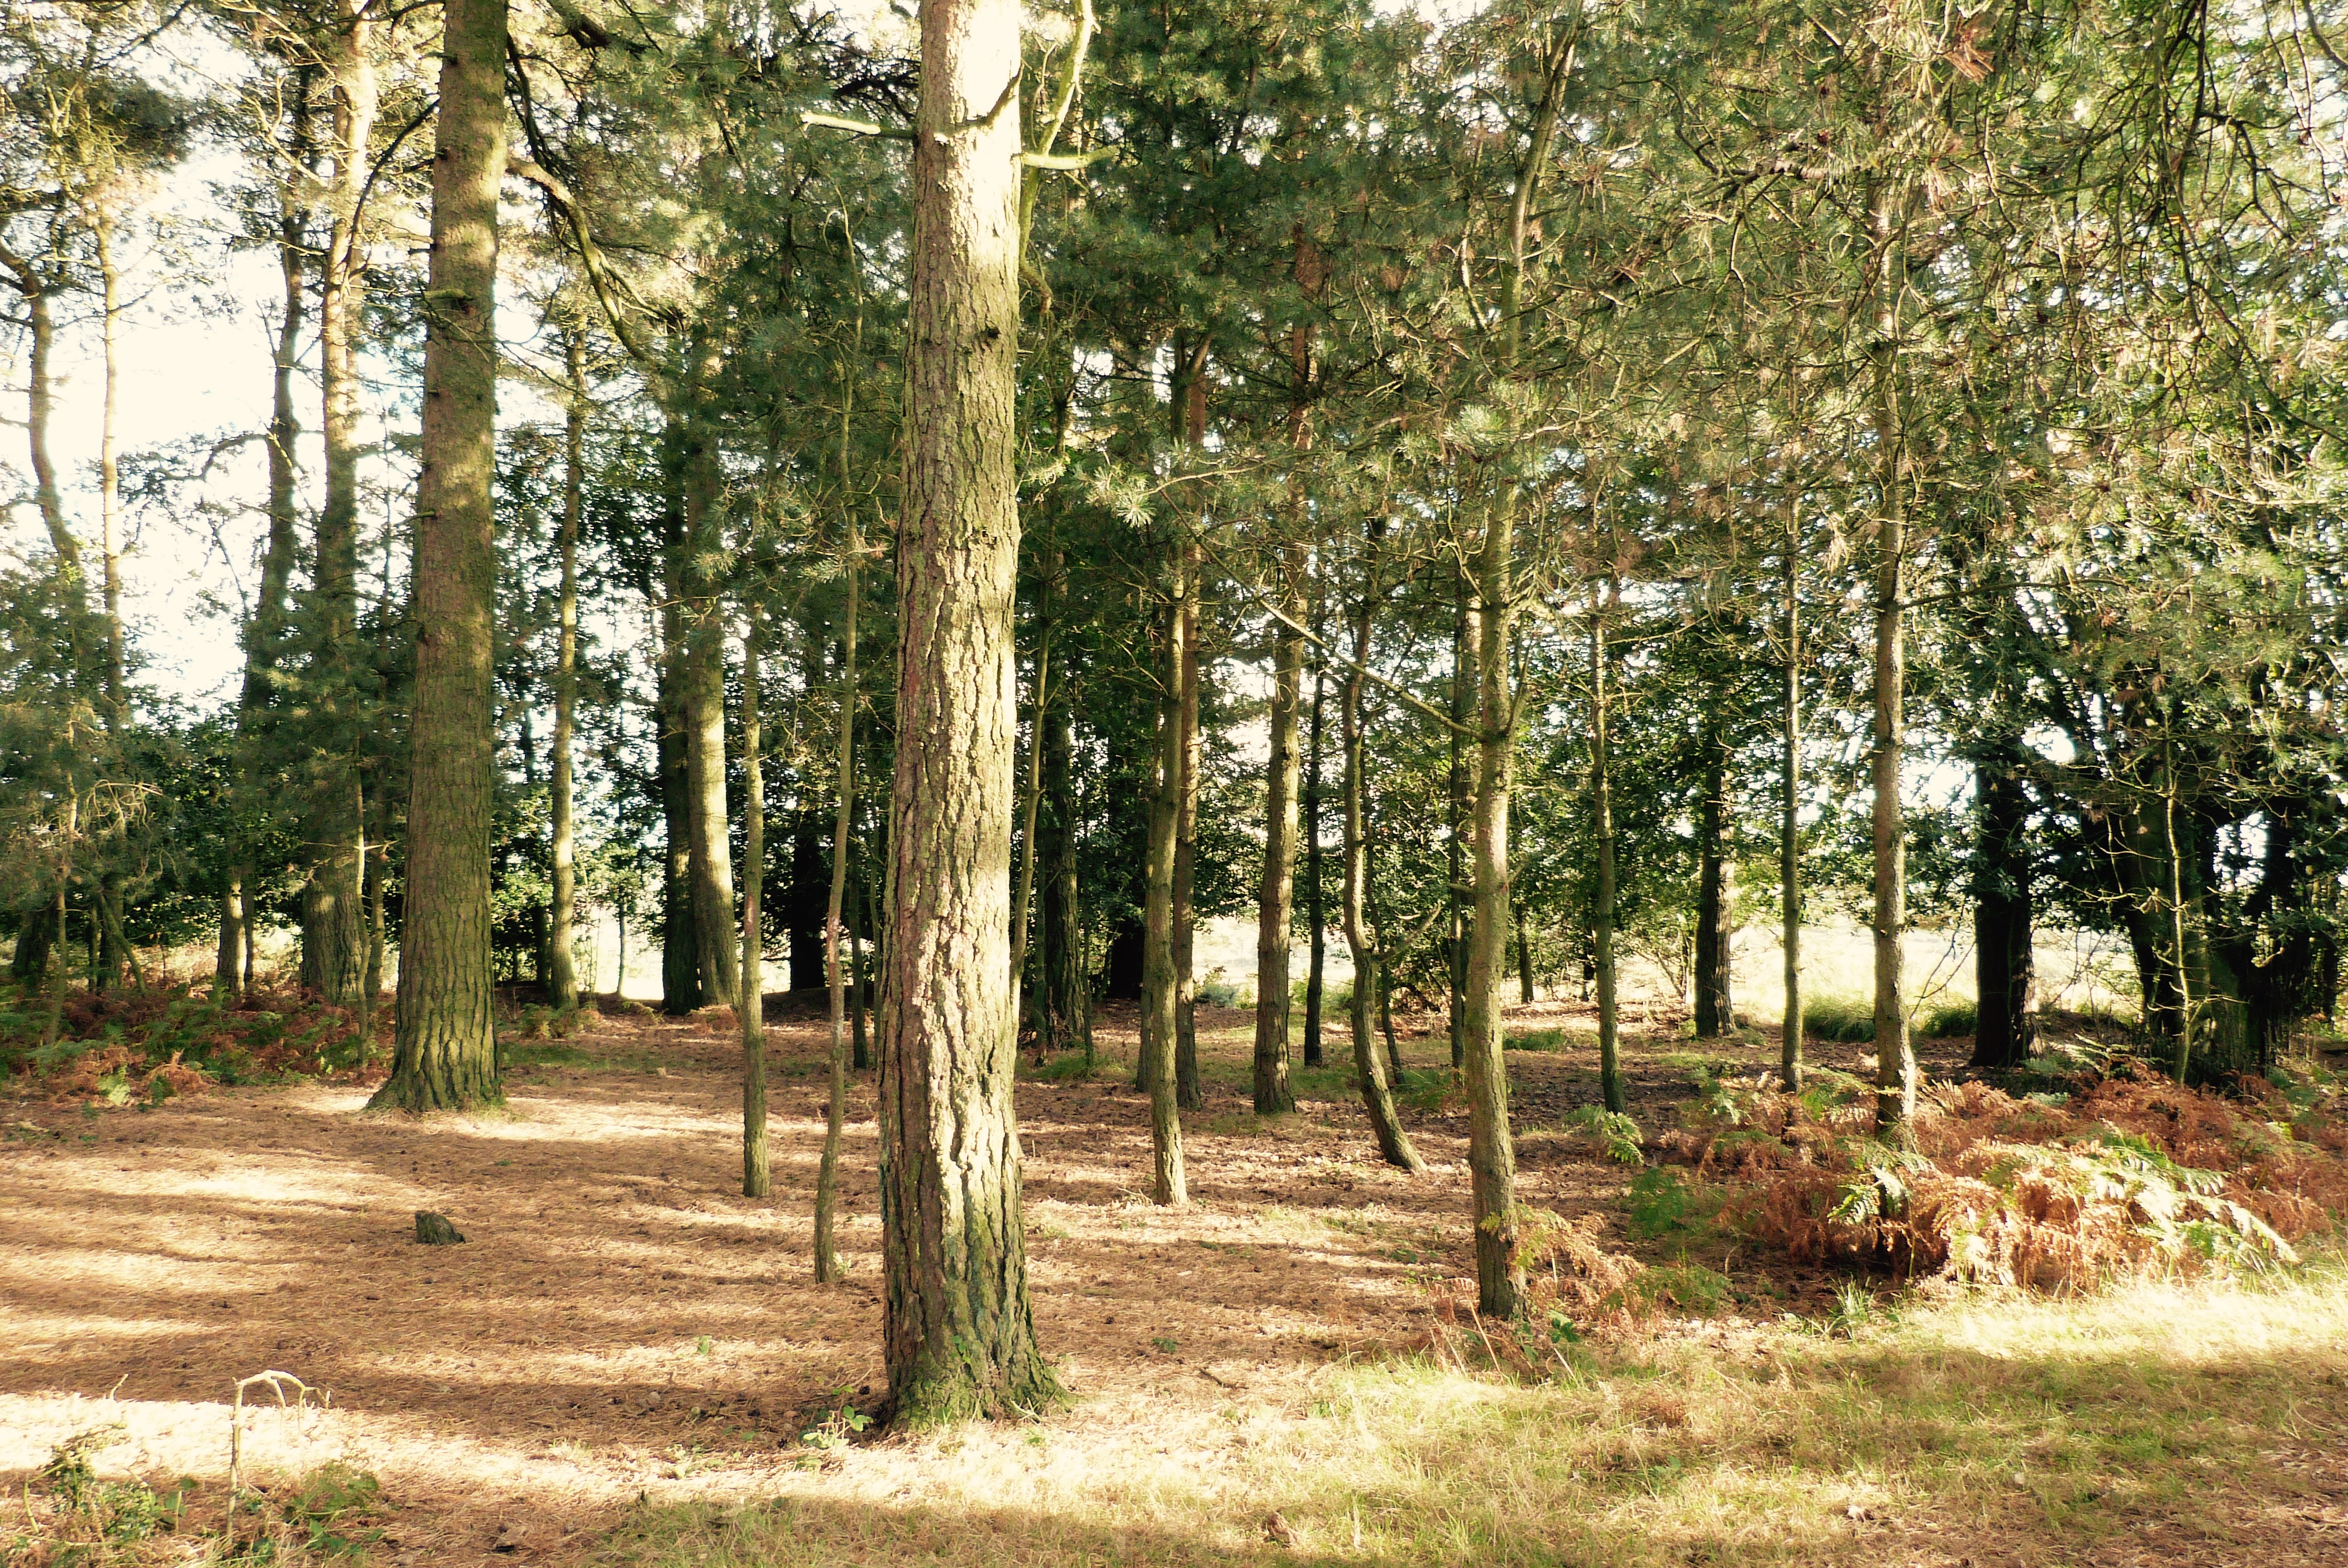 A view inside Ashdown Forest on Oct. 10 2016, which inspired A. A. Milne's Enchanted Forest in Winnie the Pooh. Christopher Robin believes it to be enchanted because no one can count whether there are 63 or 64 trees.